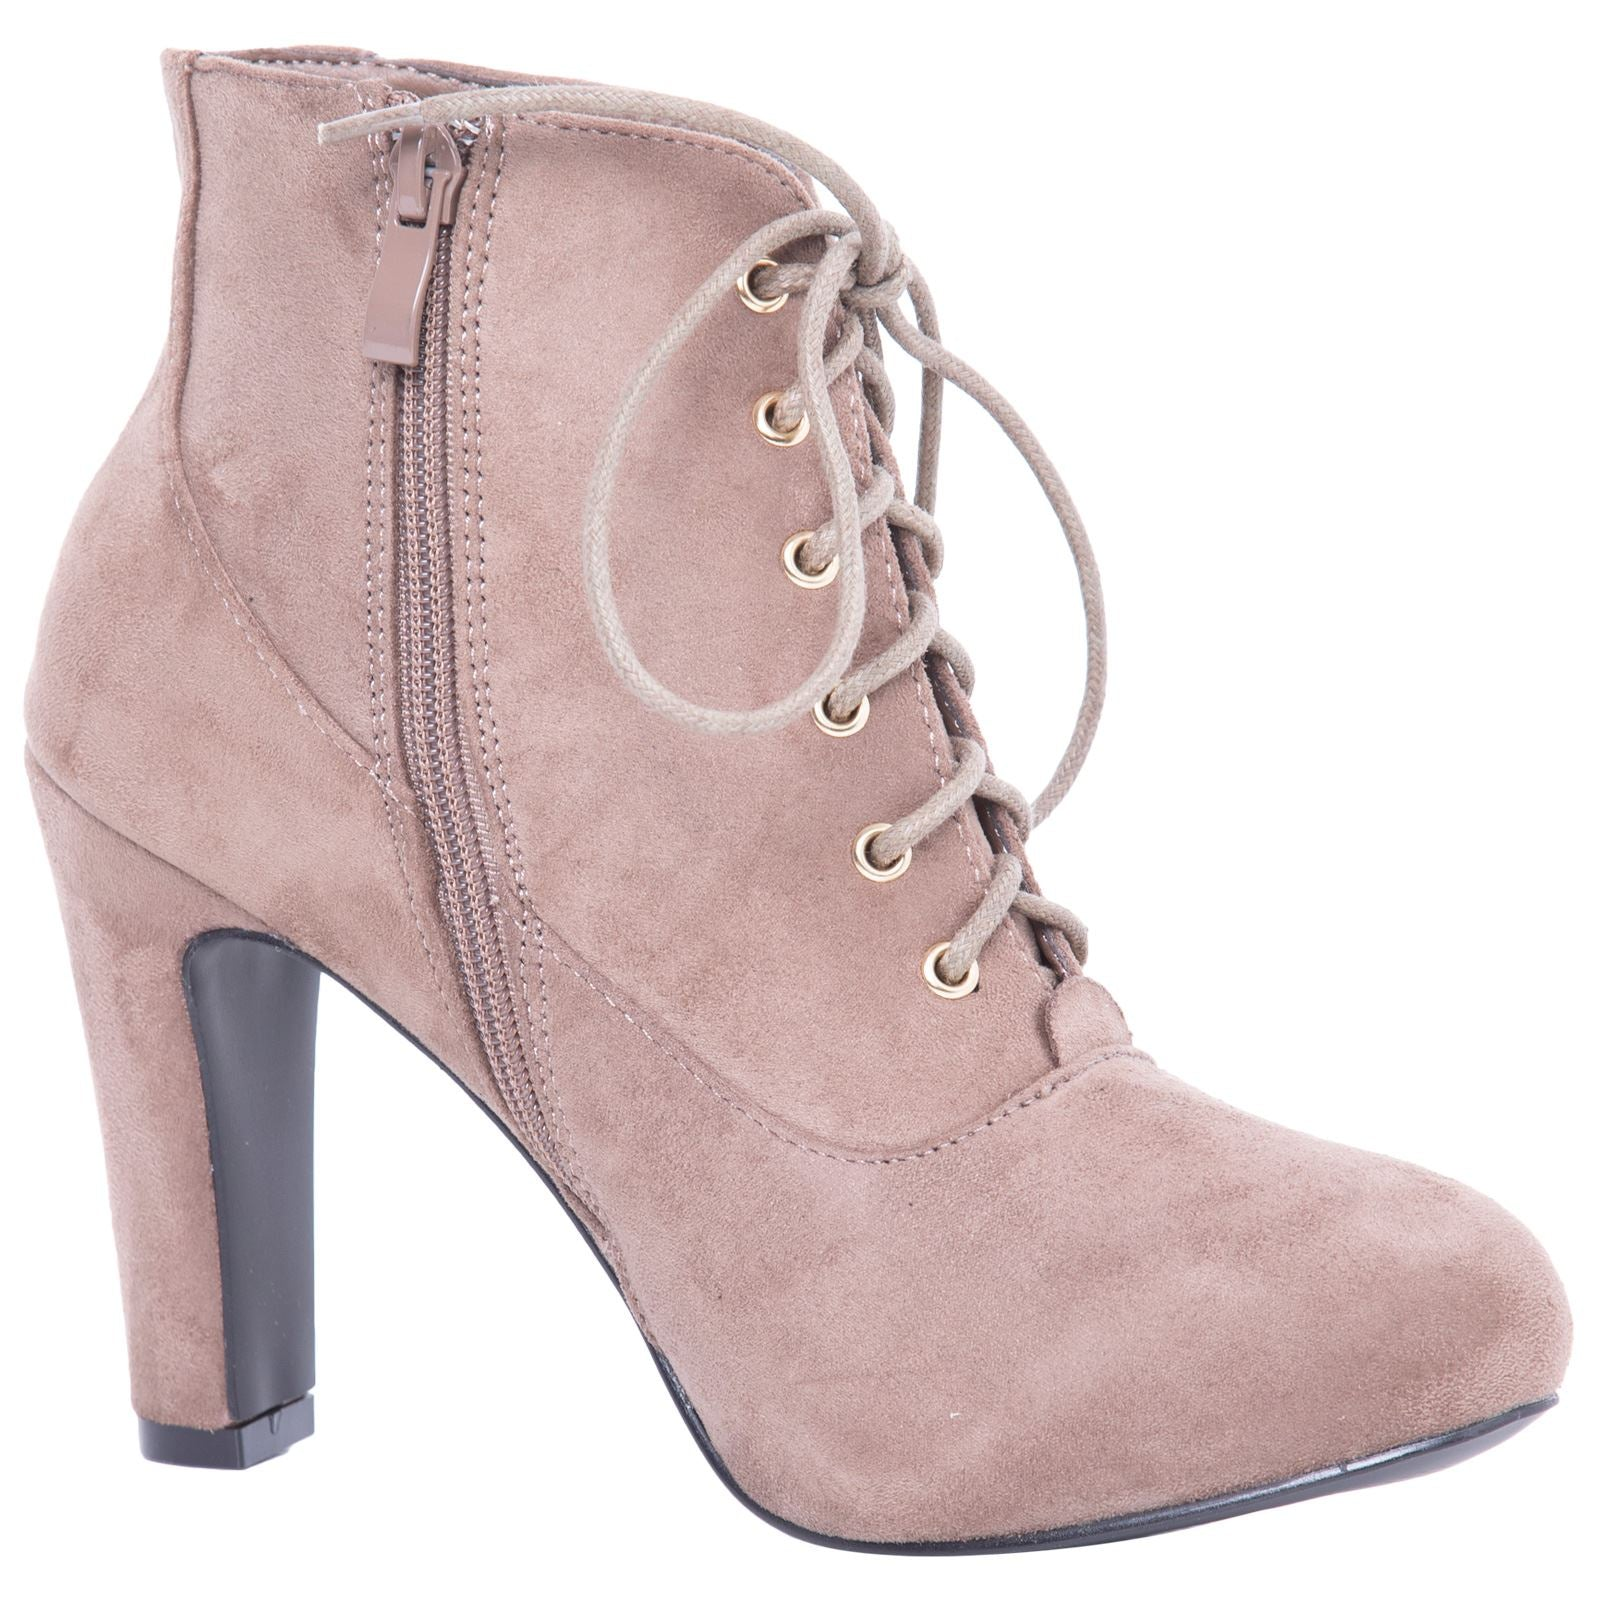 Genevieve Pointed Toe Ankle Boots in Khaki with Block Heel - Feet First Fashion